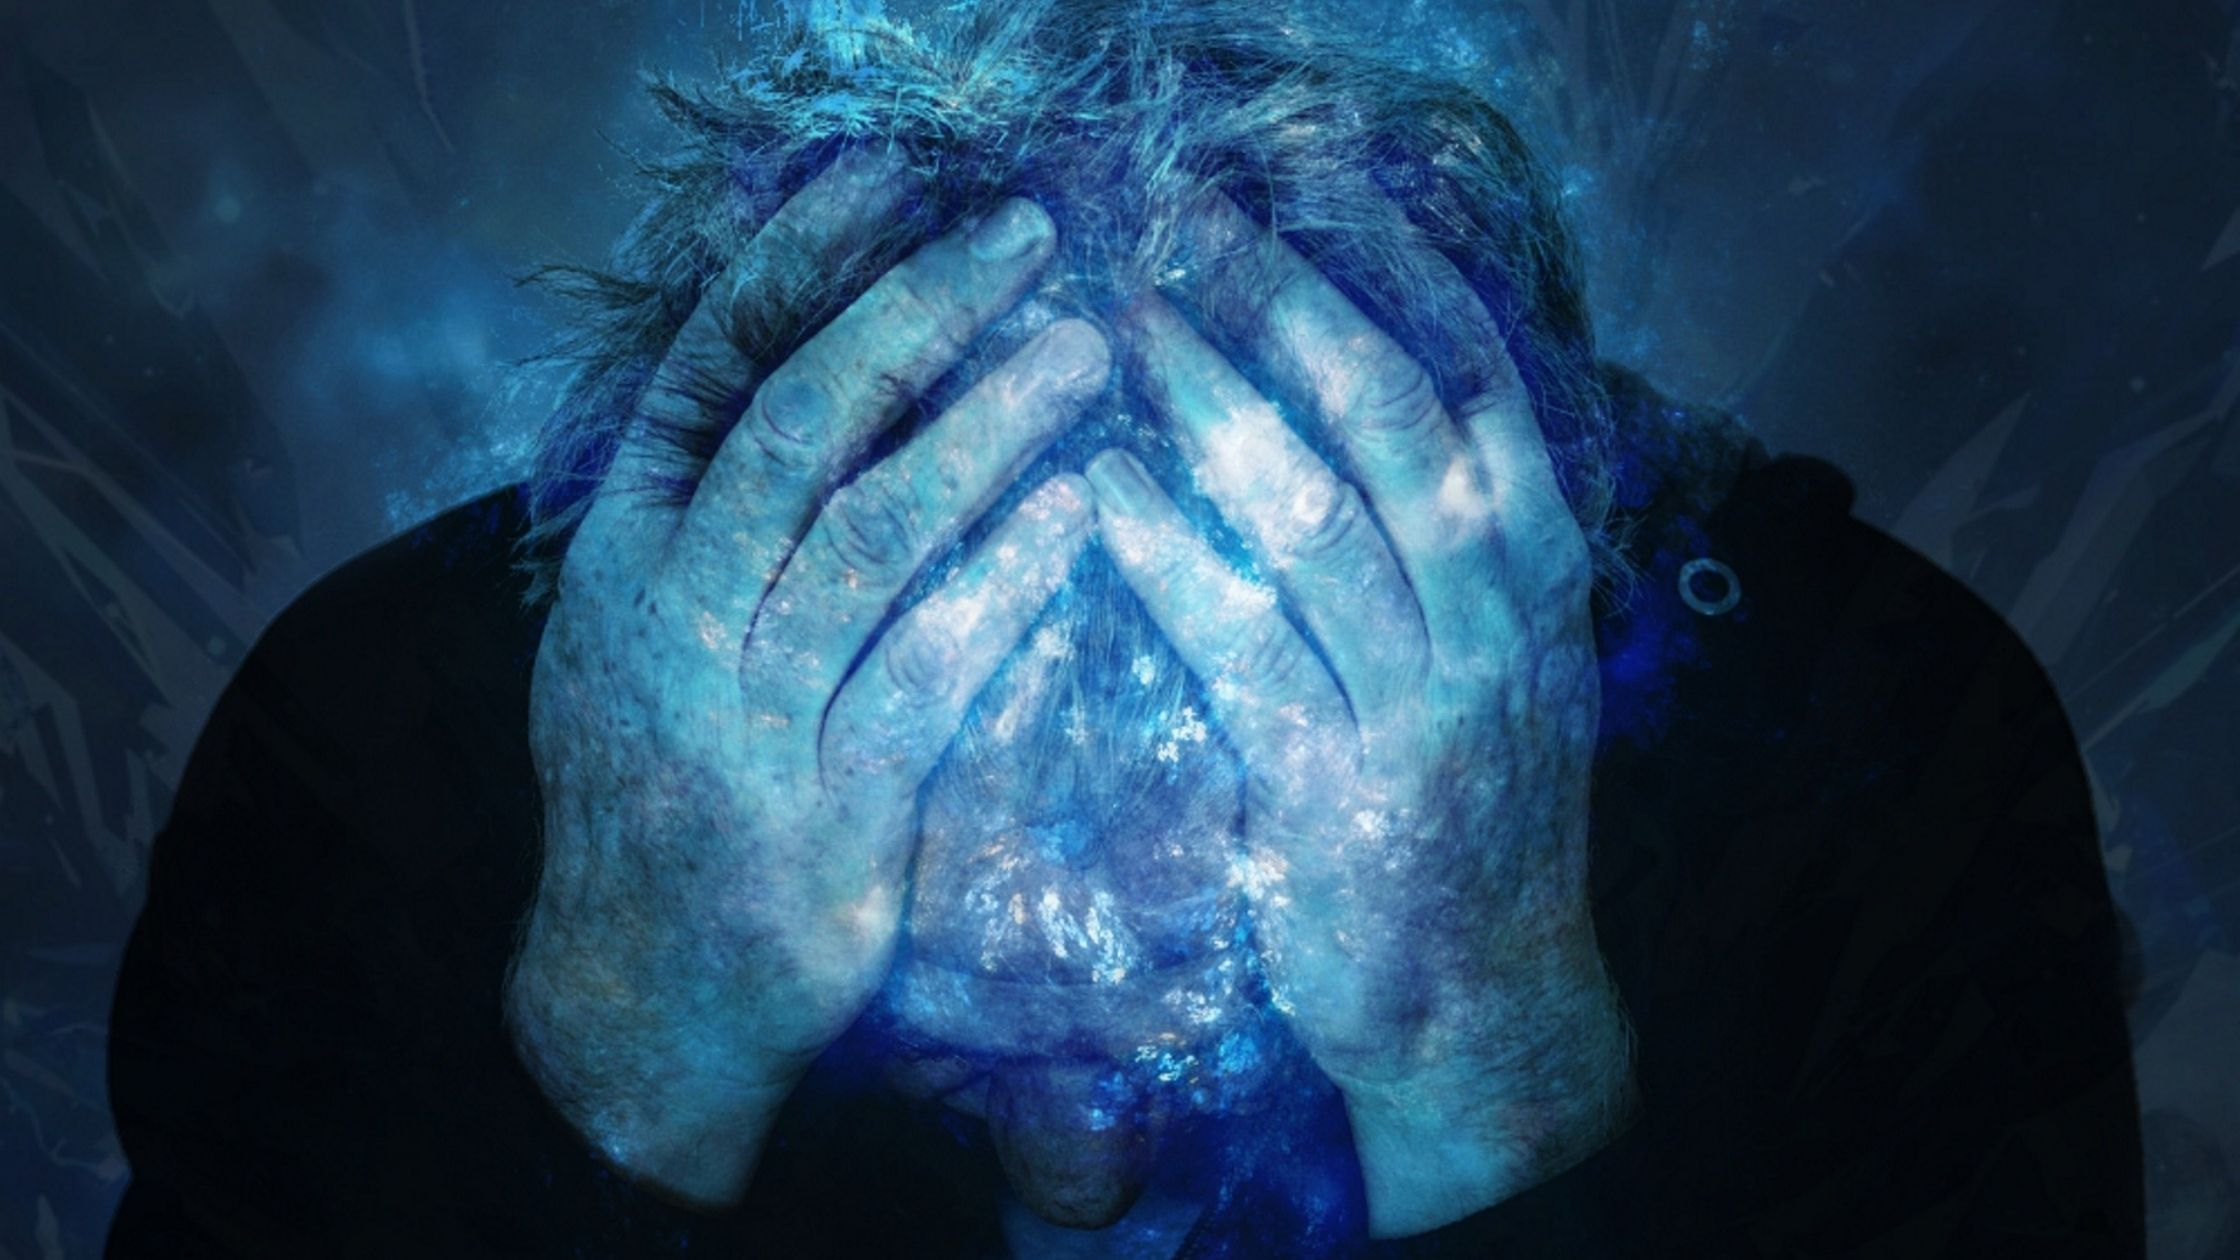 Depression - what is it, what are the symptoms and how is it treated